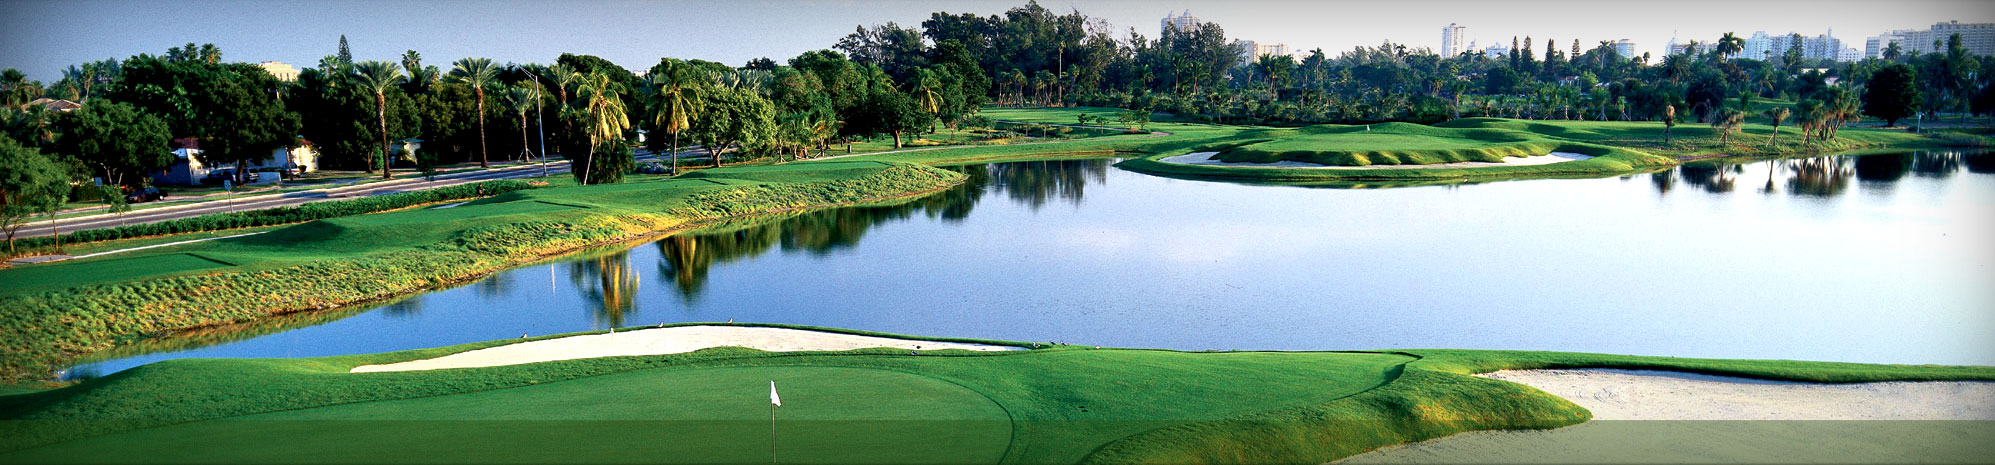 Overview of golf course named Miami Beach Golf Club